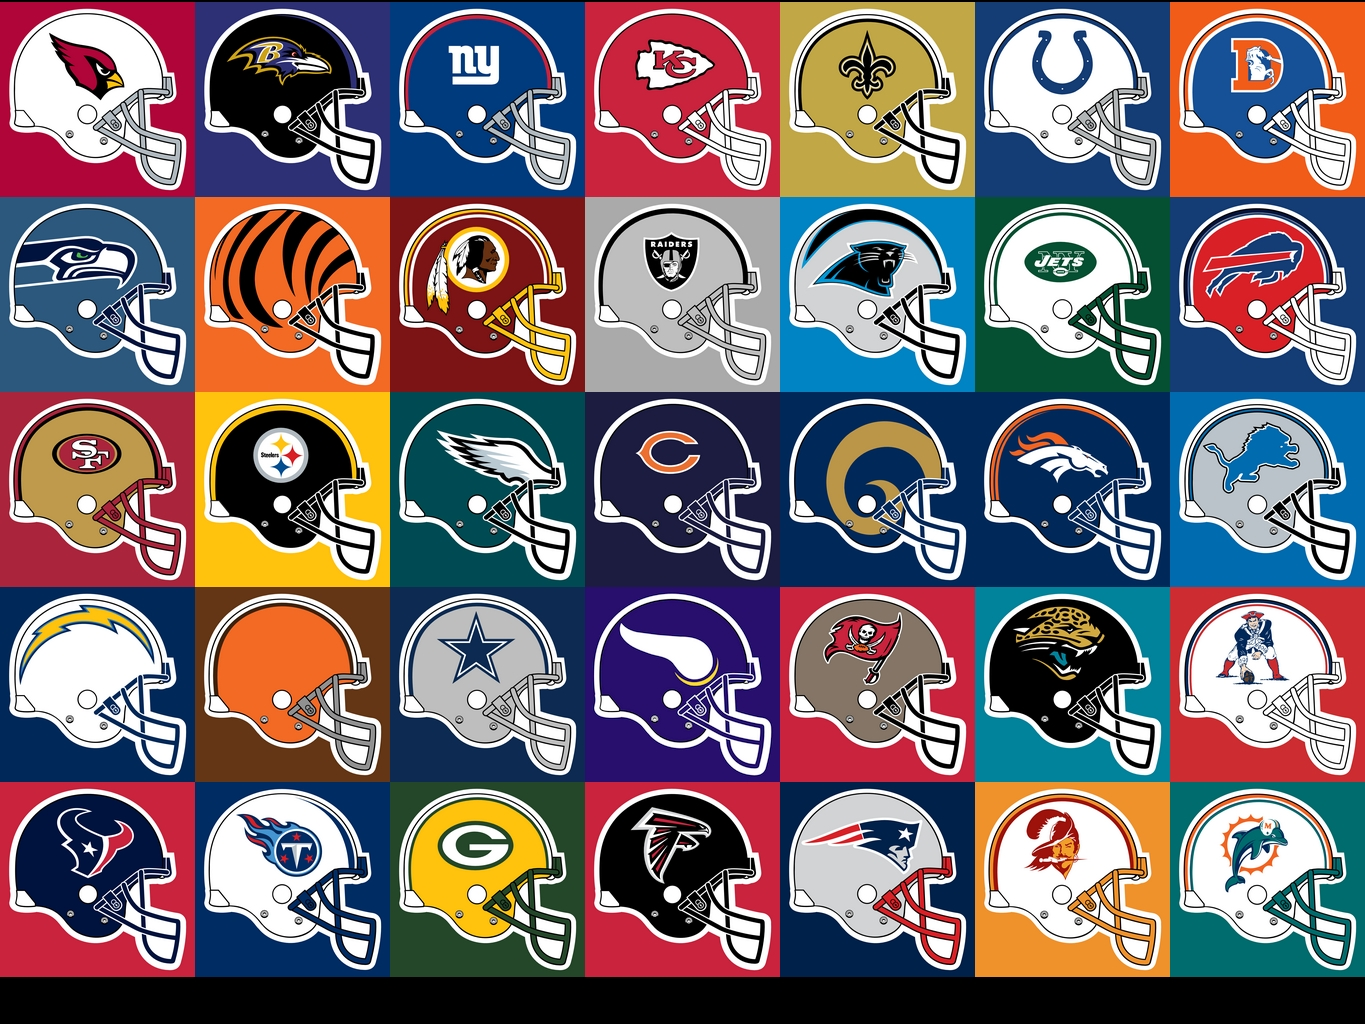 hdwp net nfl teams wallpaper wallpapers html filesize 1280x800 494k 1365x1024